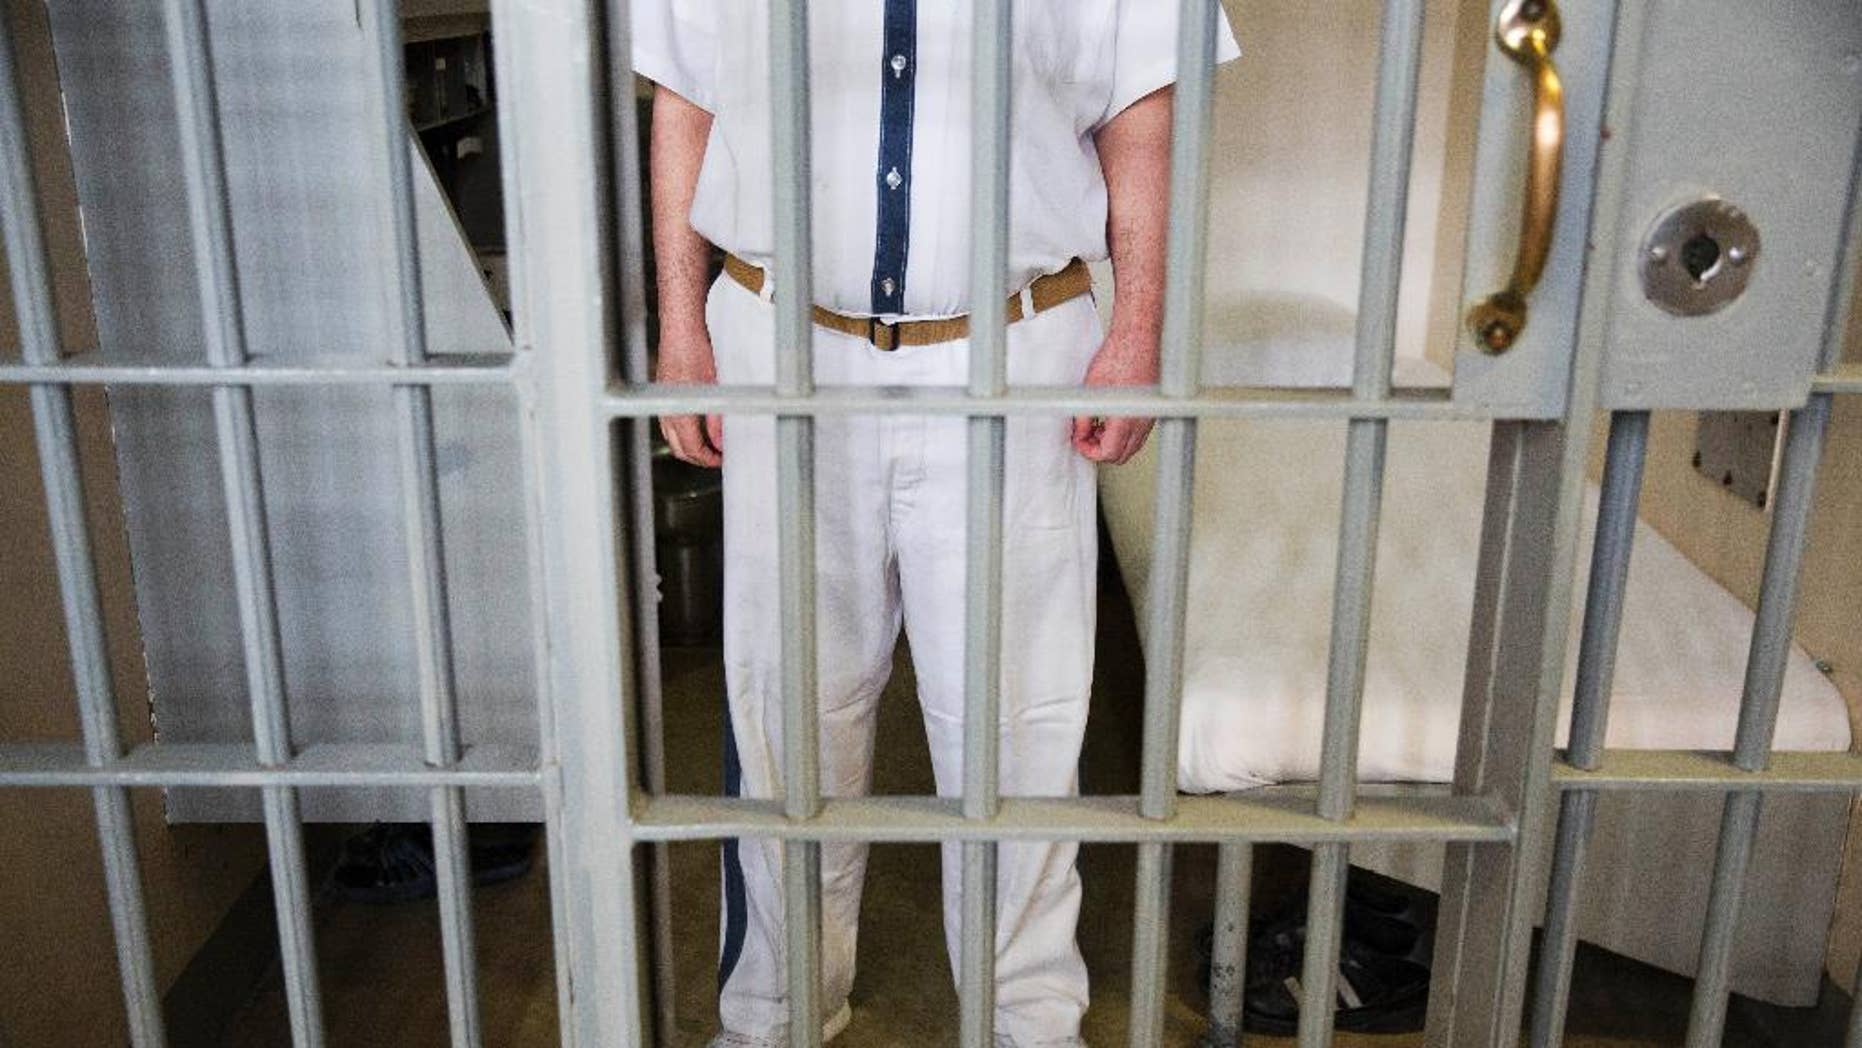 A prisoner stands at his cell at the Georgia Diagnostic and Classification Prison.